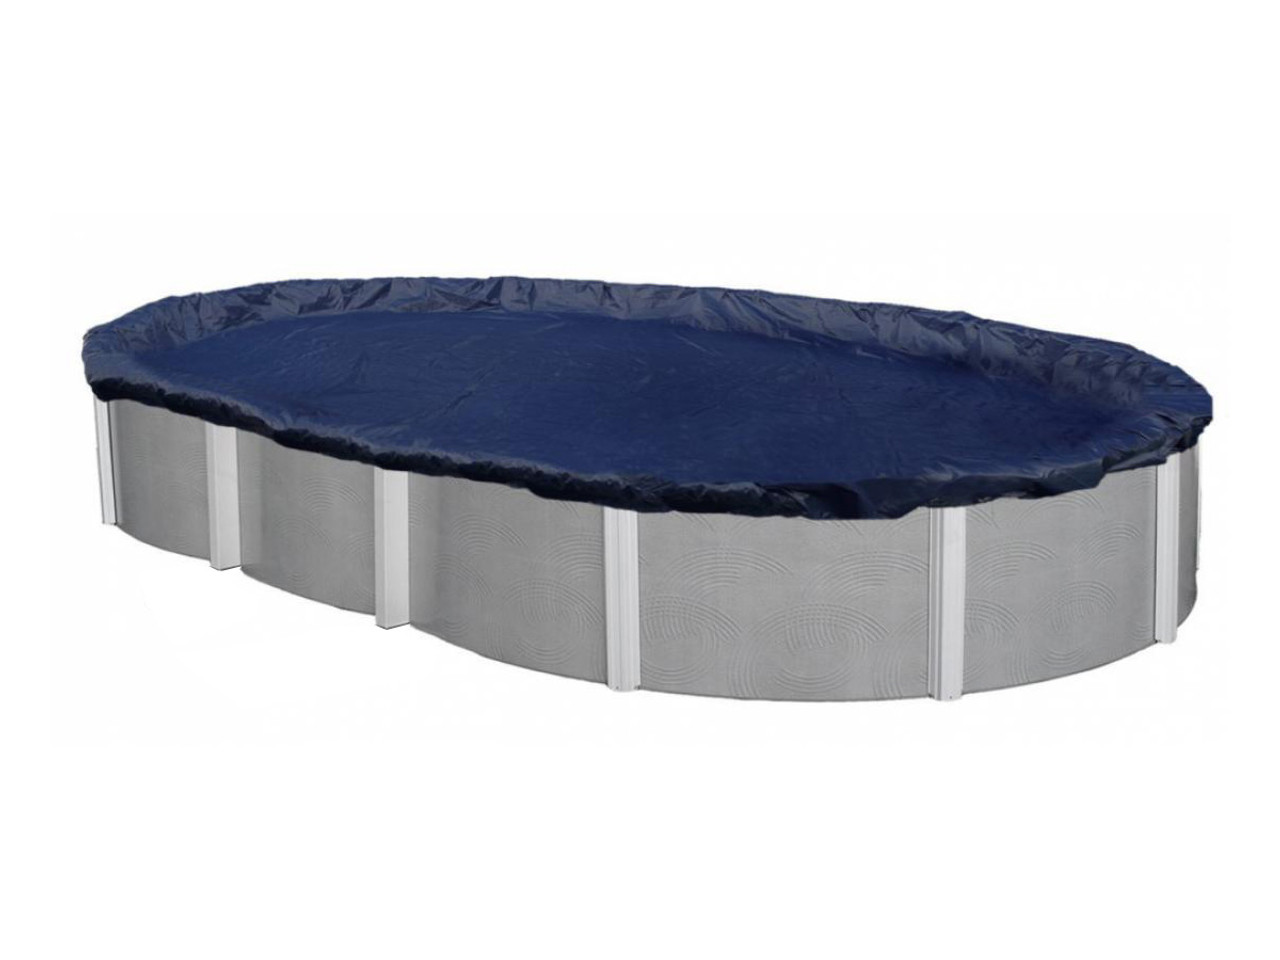 15 X 30 Oval 8 Year Poly Pool Cover Suntekonline Com